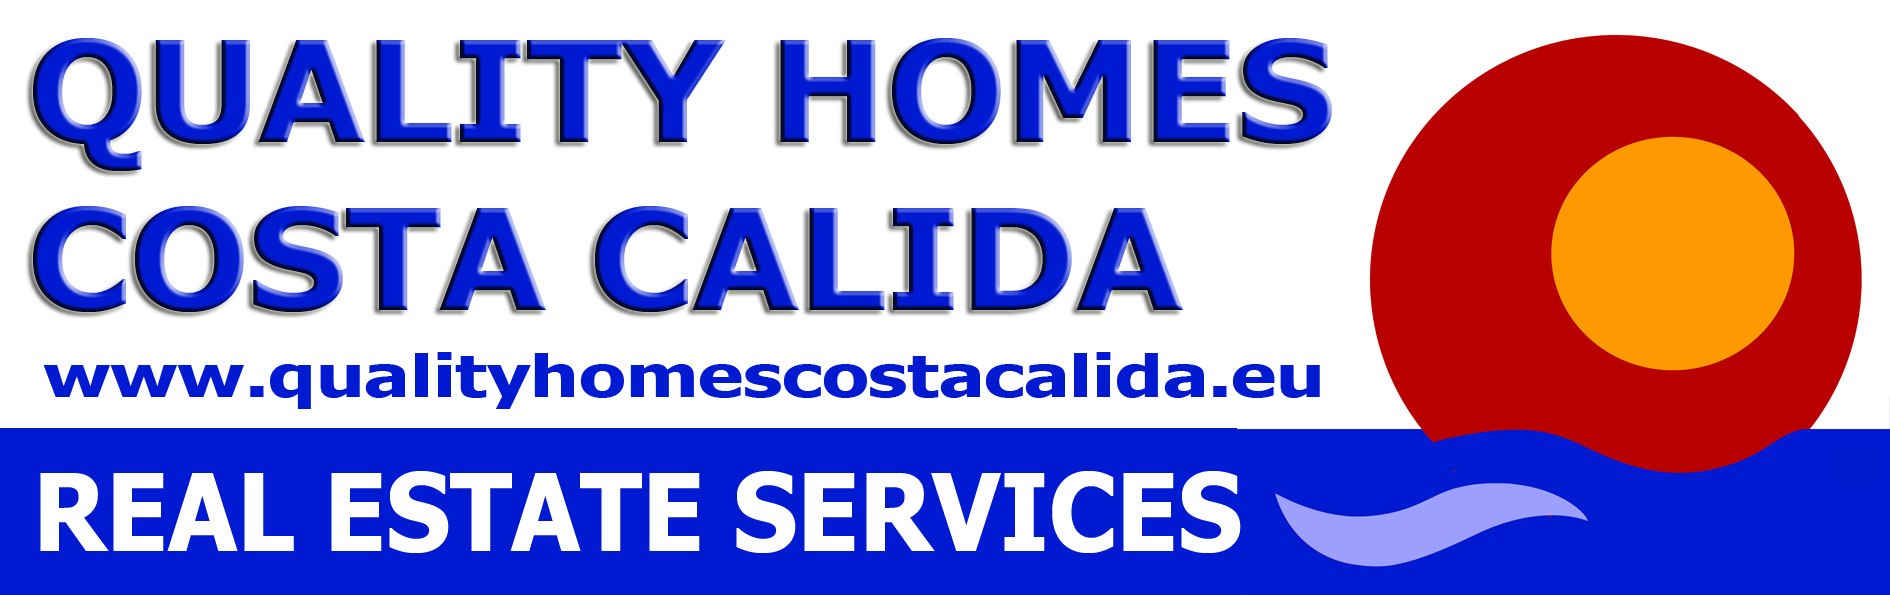 Quality Homes Costa Calida